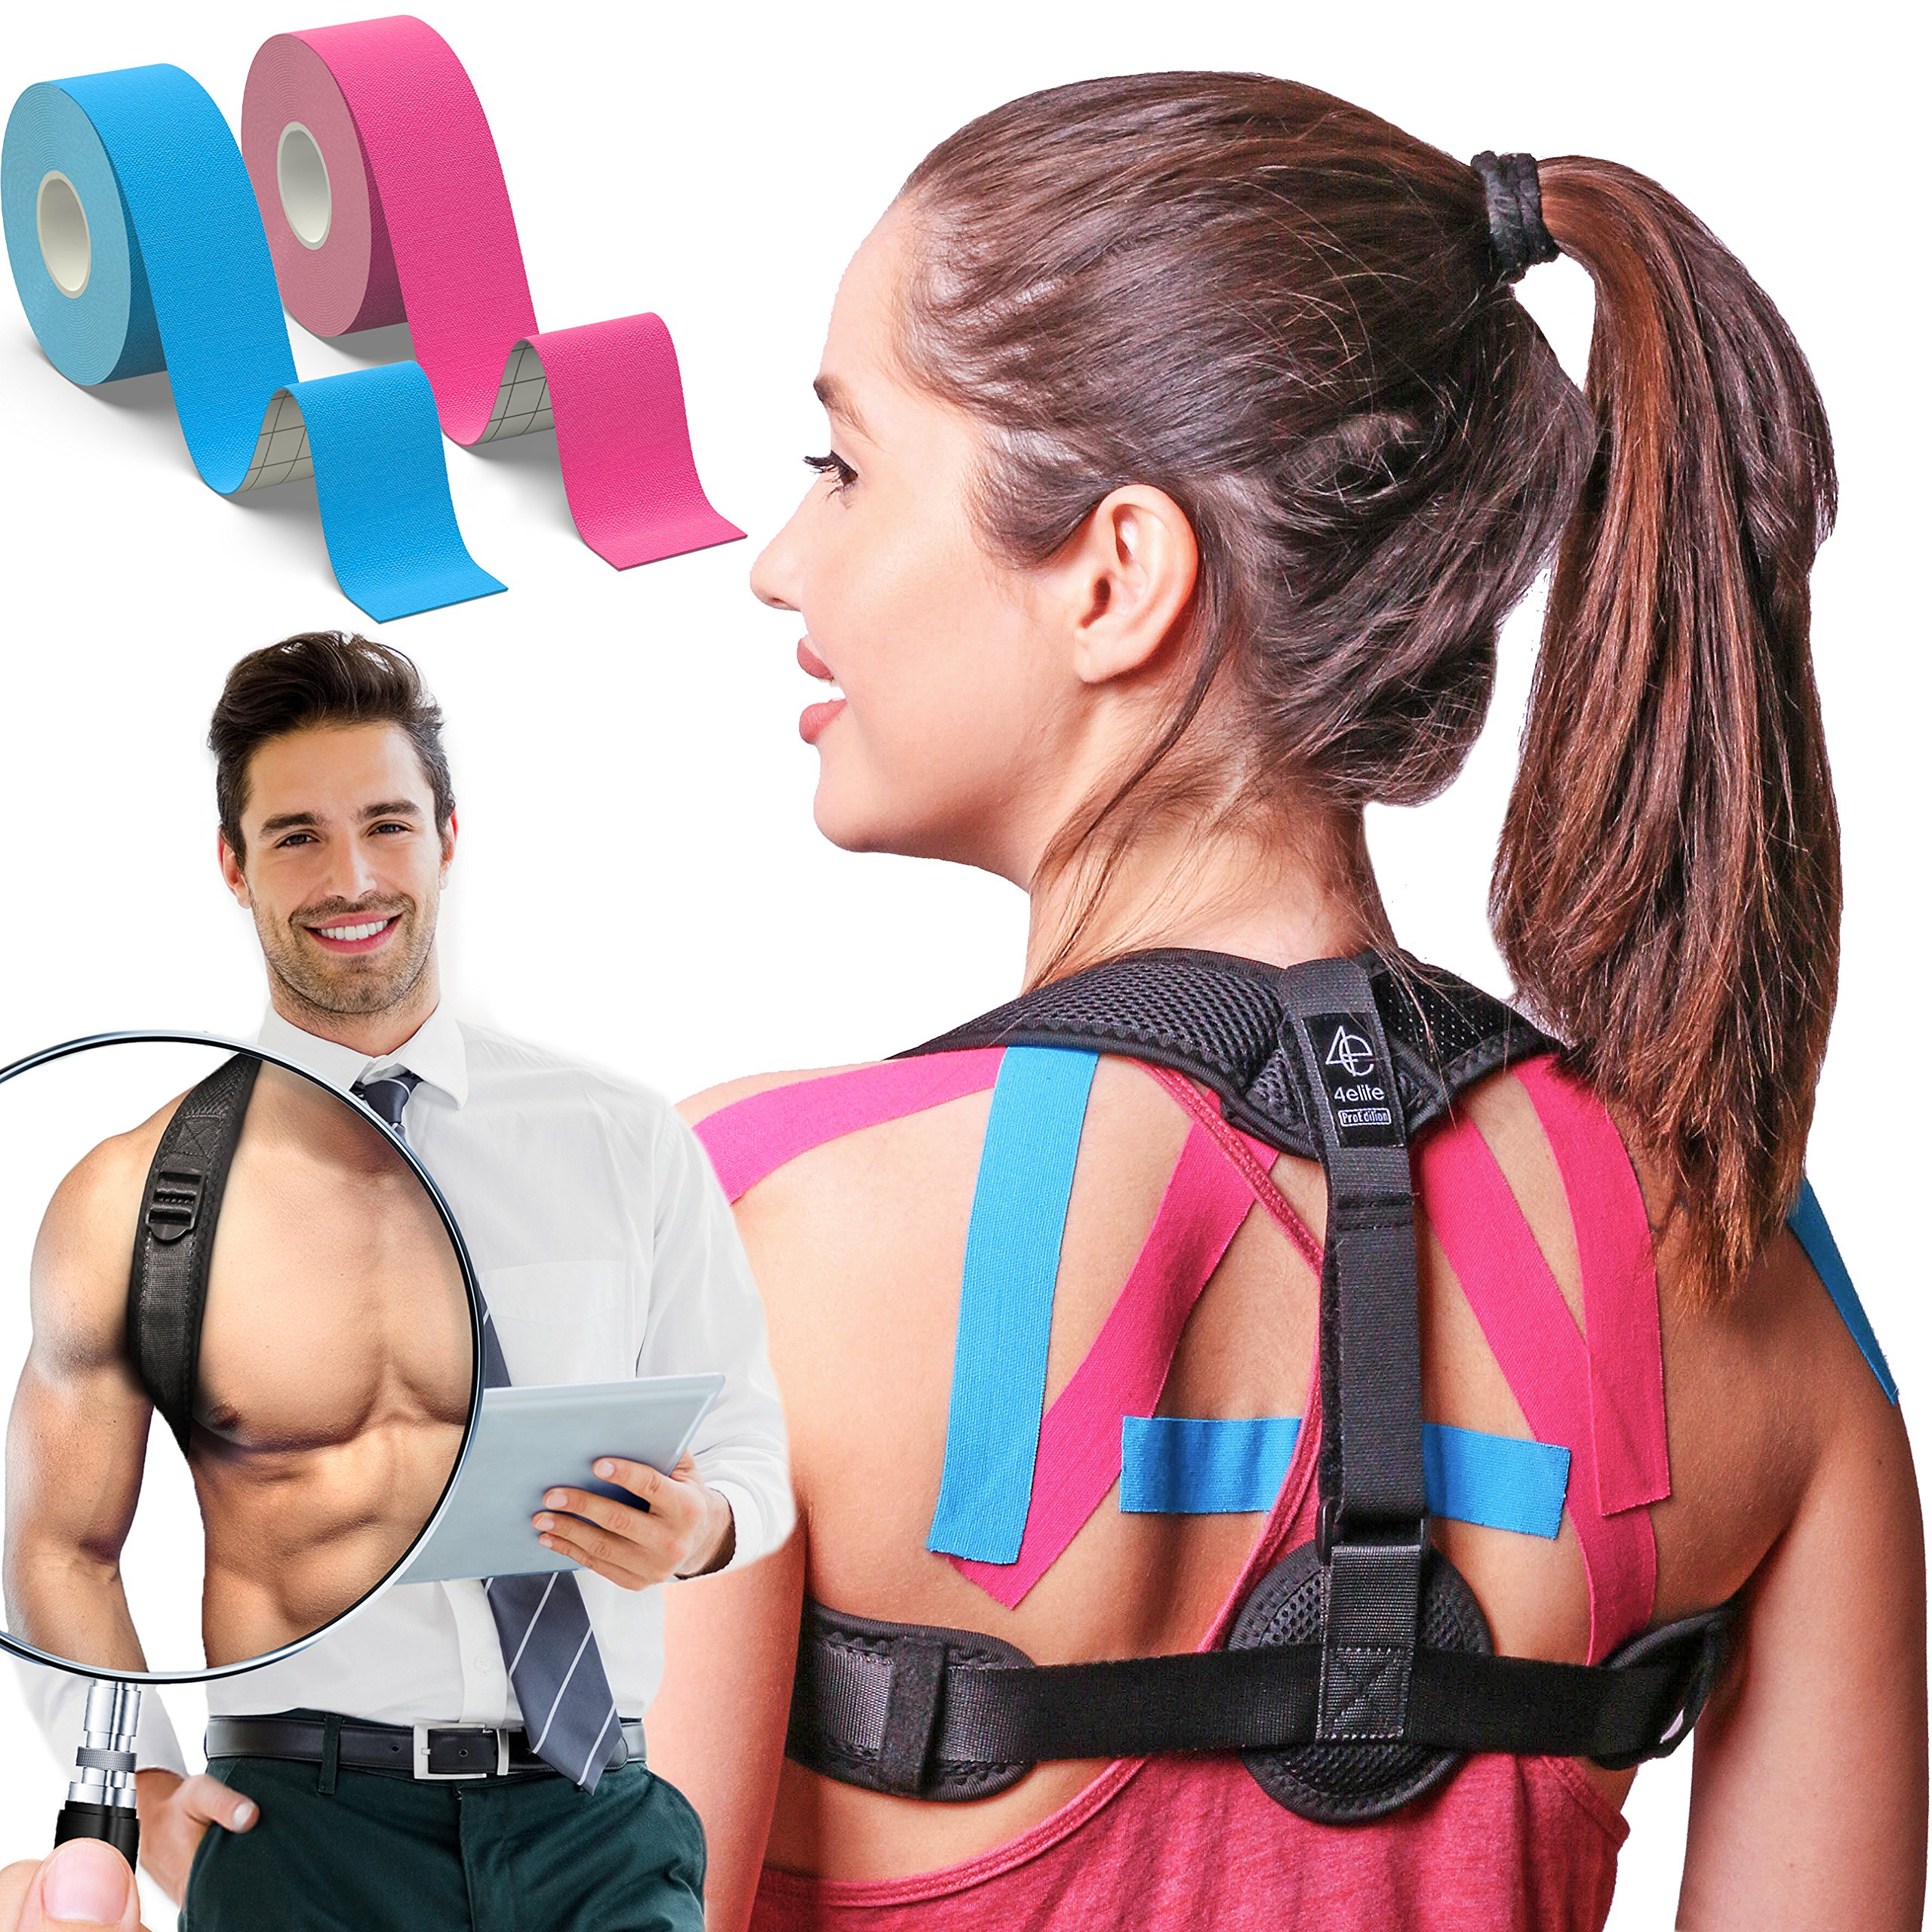 Posture Corrector for Women and Men | Front Adjustable Clavicle Brace | Back Brace for Posture Correction | Improve Bad Posture | Kinesiology Tape included by 4Elite